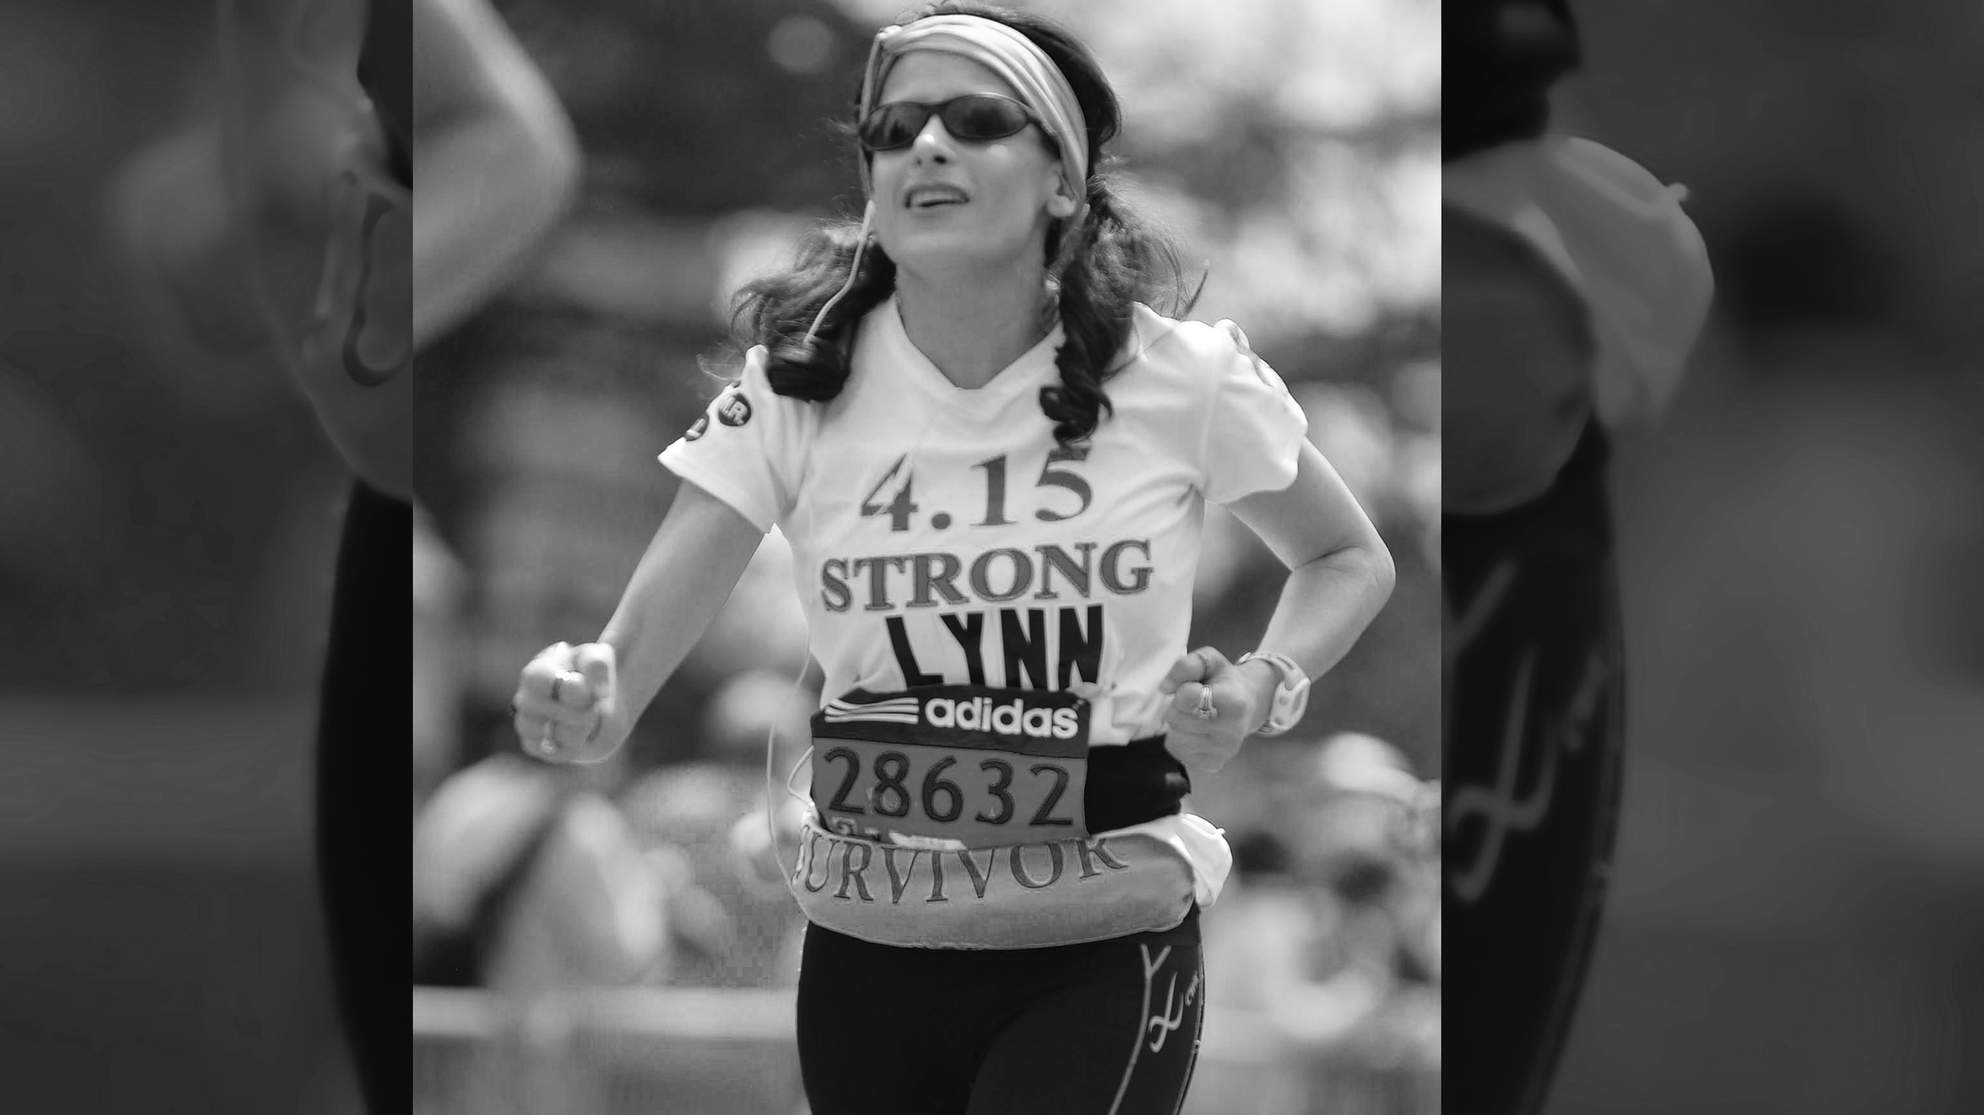 I Suffered a Debilitating Head Injury in the Boston Marathon Bombing. One Year Later, I Completed the Race